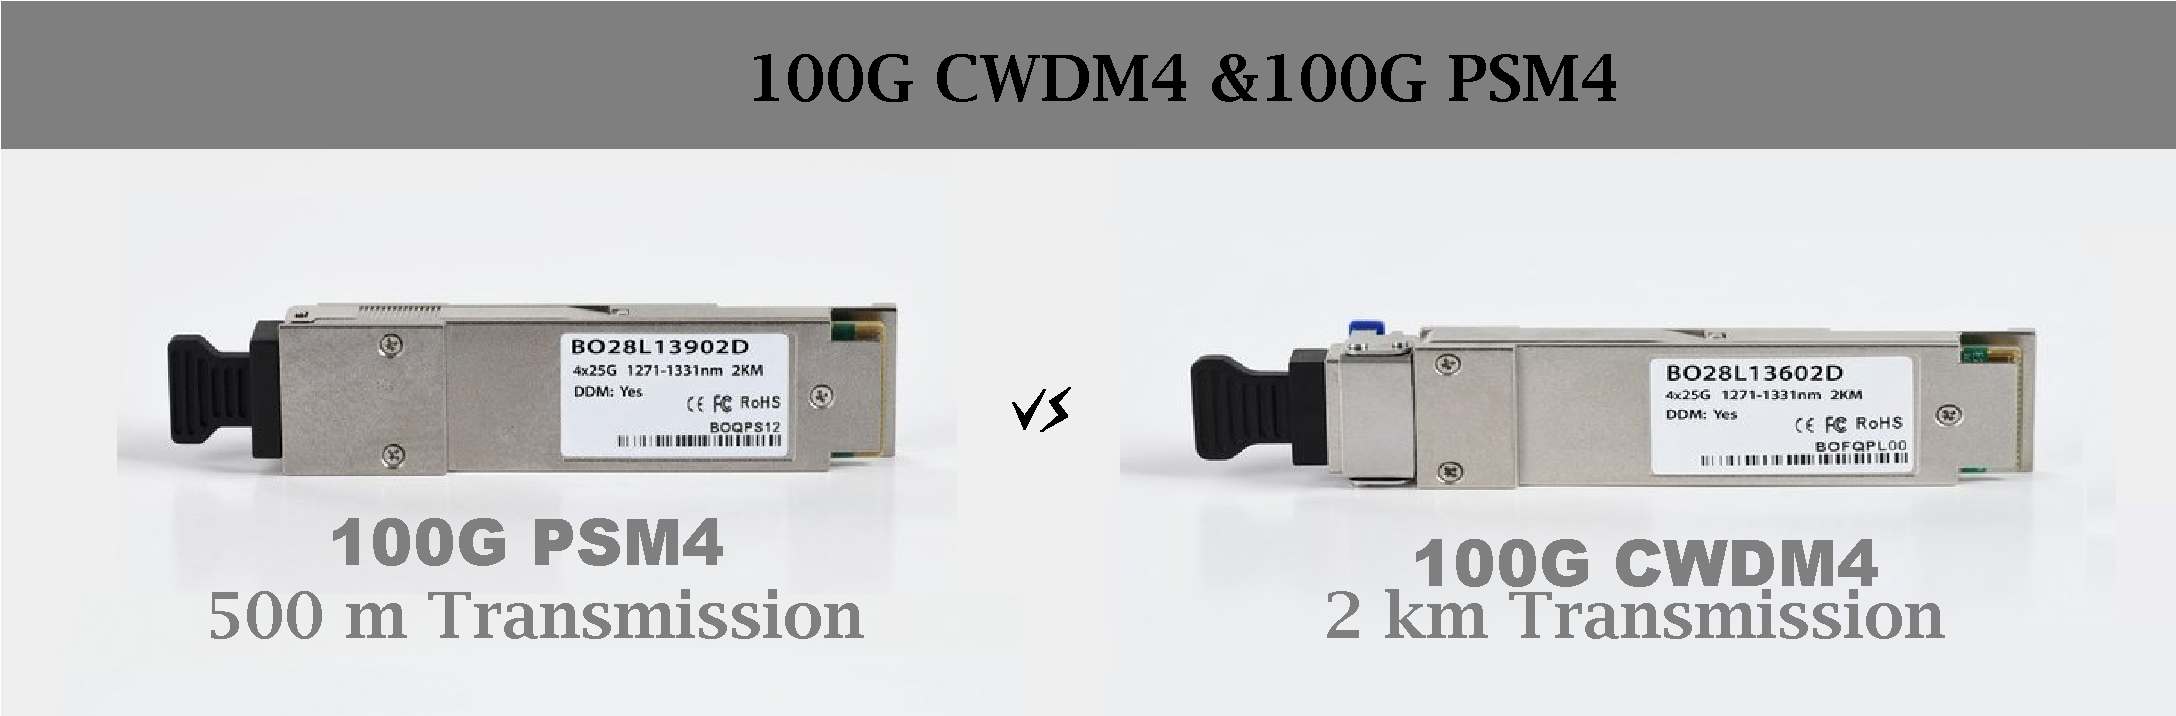 2_PSM4-CWDM4-Most-Promising-Solution-for-100G-Ethernet.png